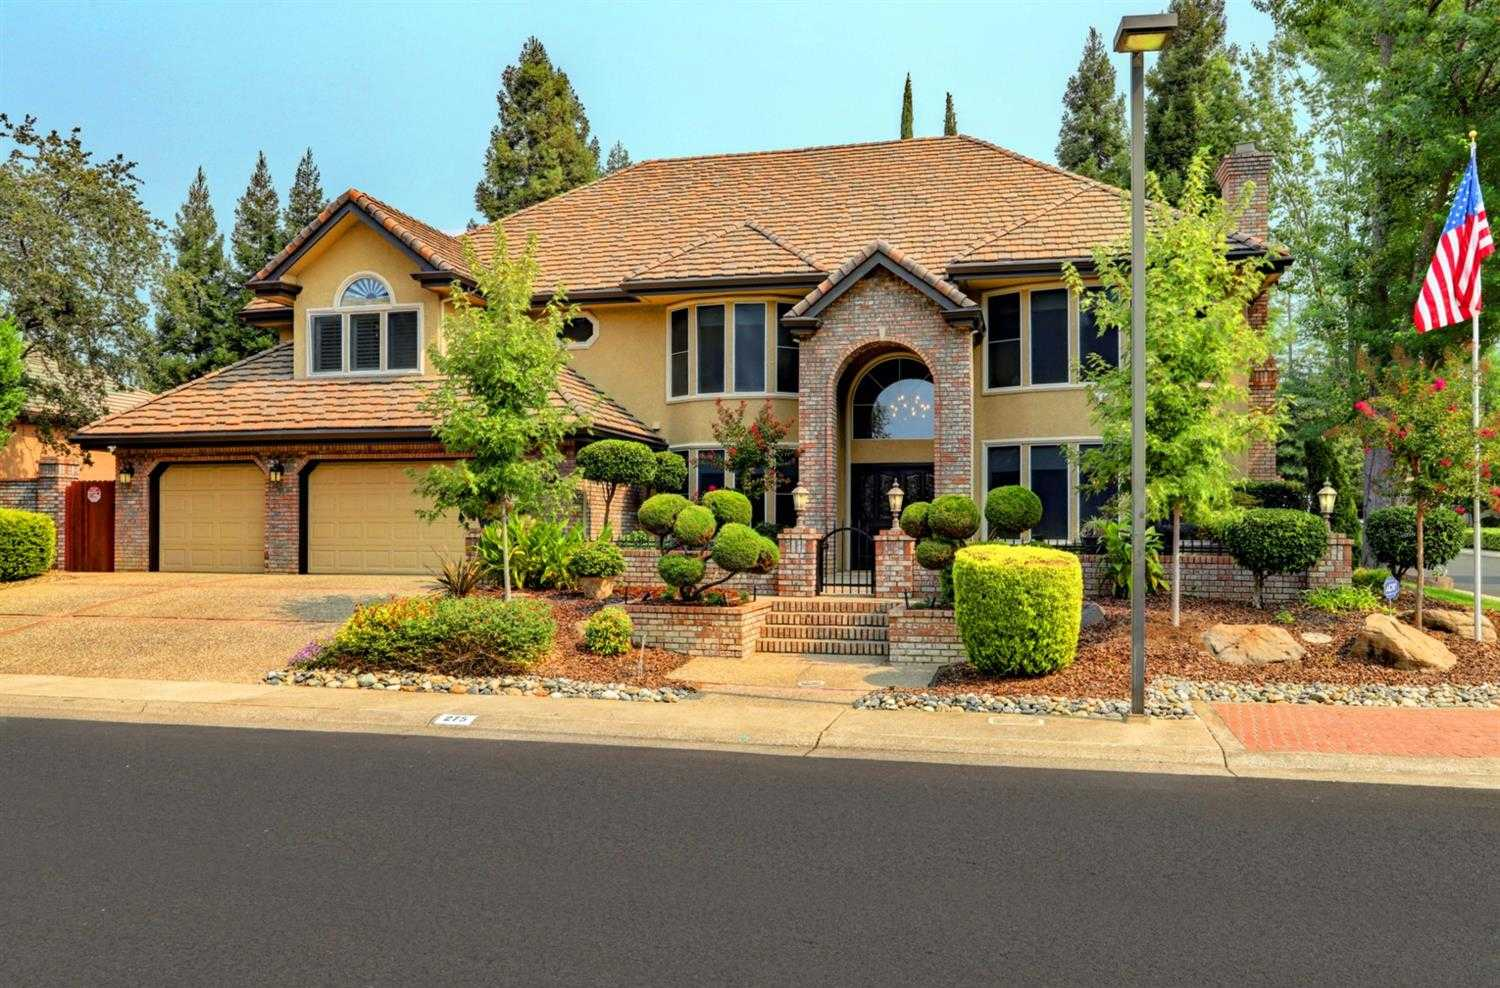 $939,000 - 4Br/3Ba -  for Sale in American River Canyon, Folsom